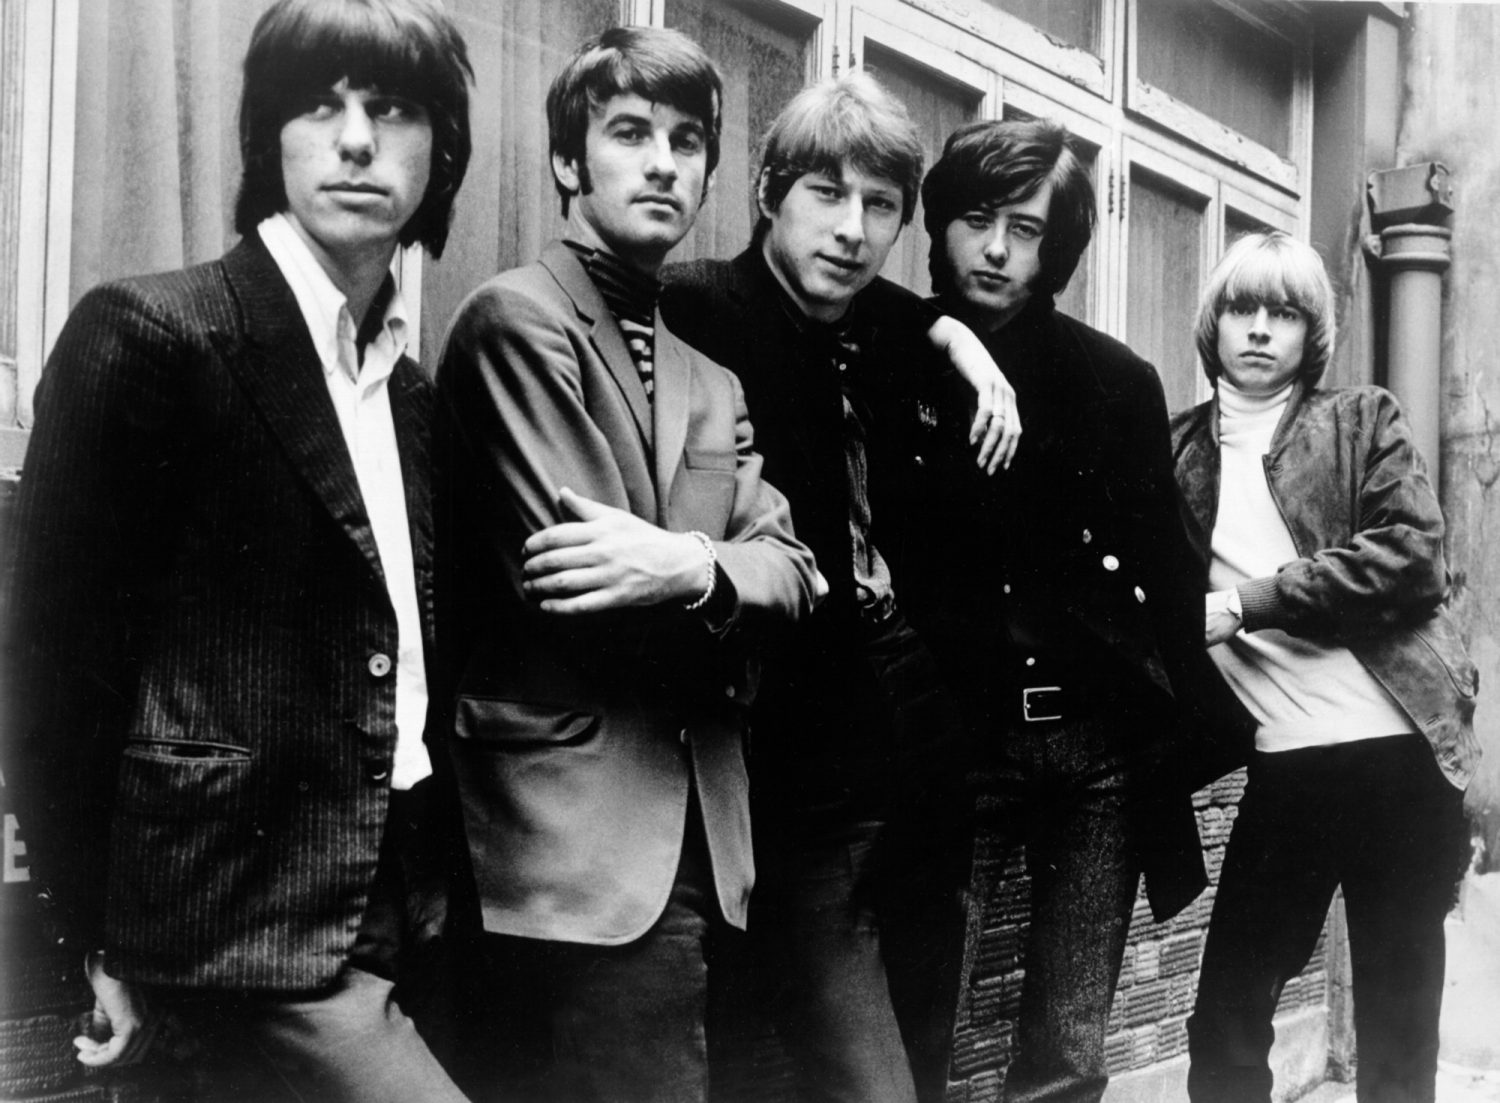 Five Good Covers: Heart Full of Soul (The Yardbirds)